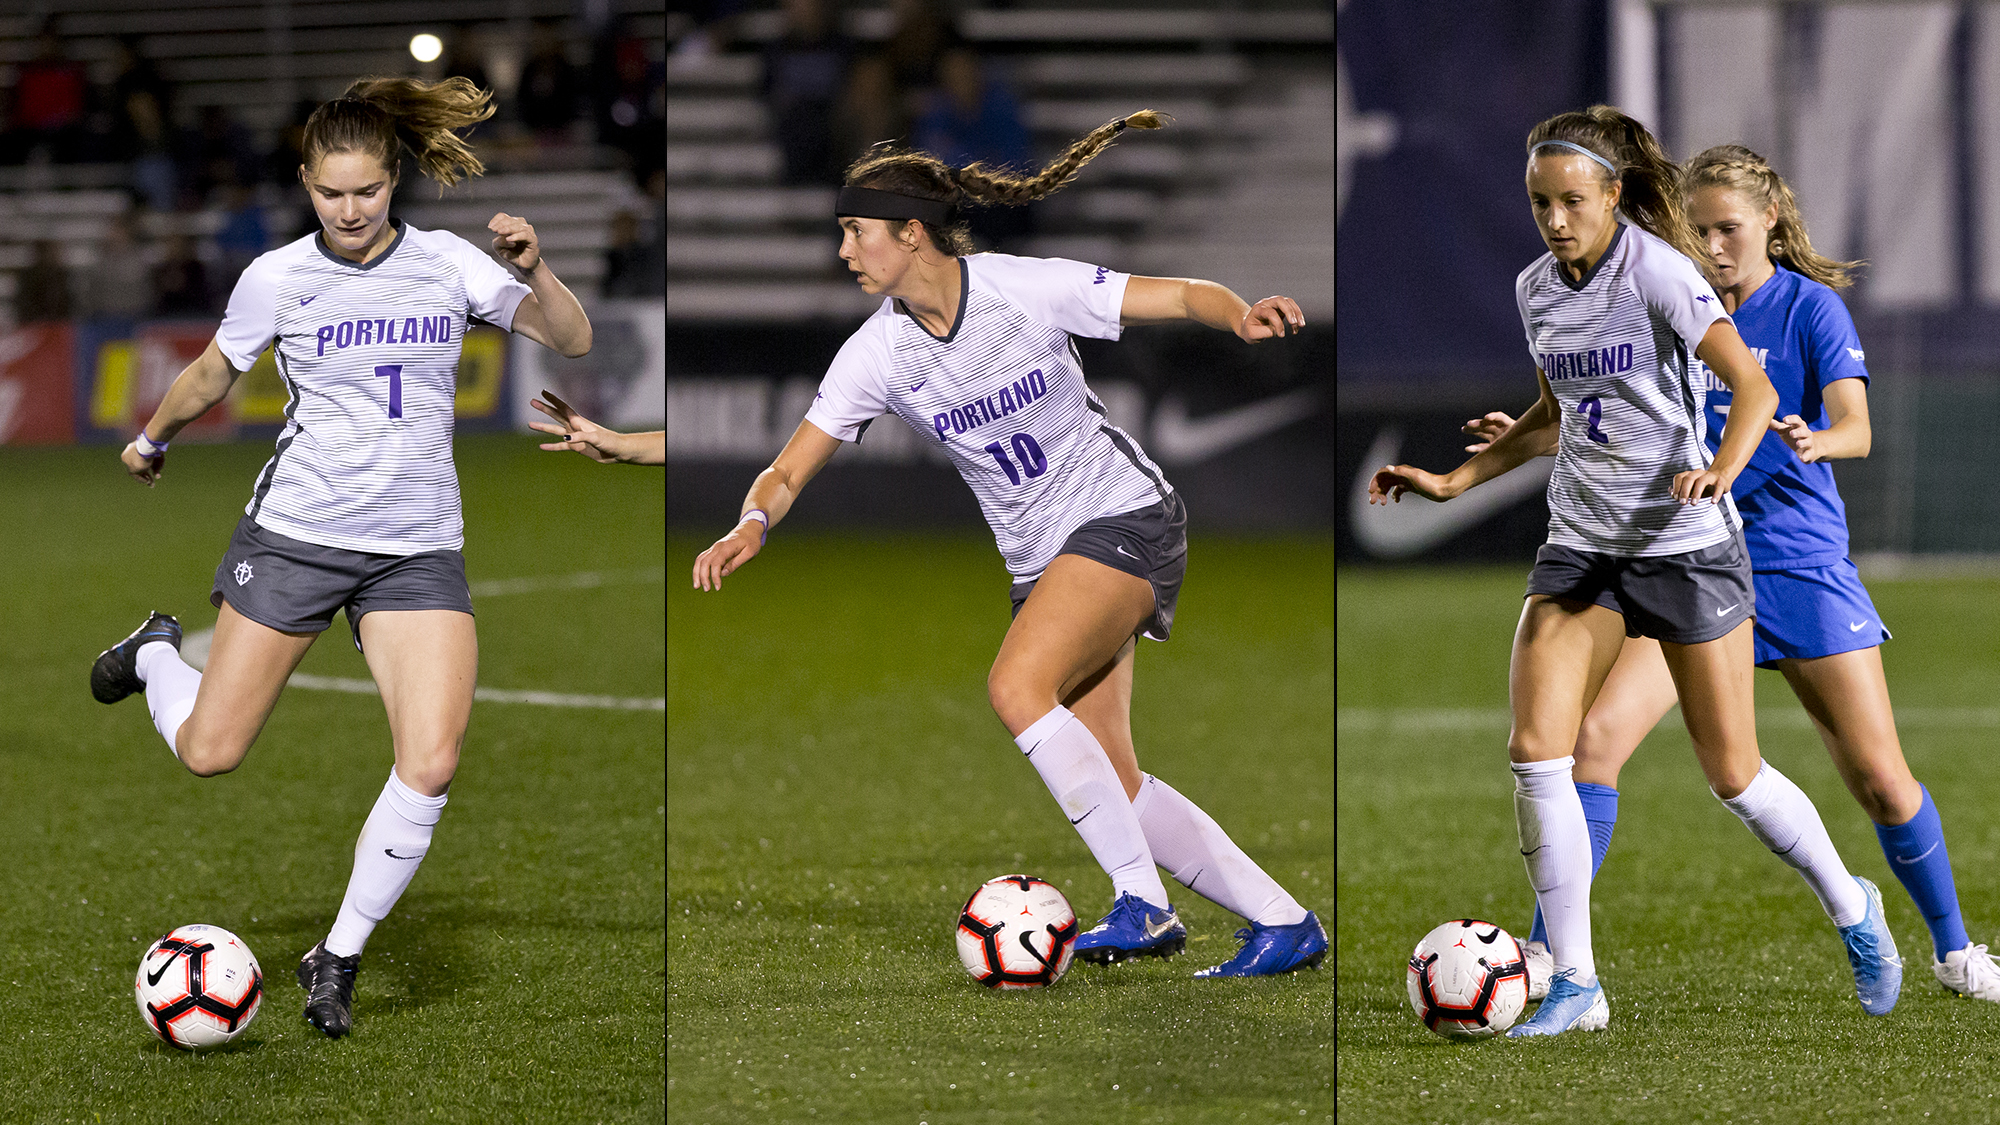 Davidson, Koehler, and Ries Earn All-WCC Honors